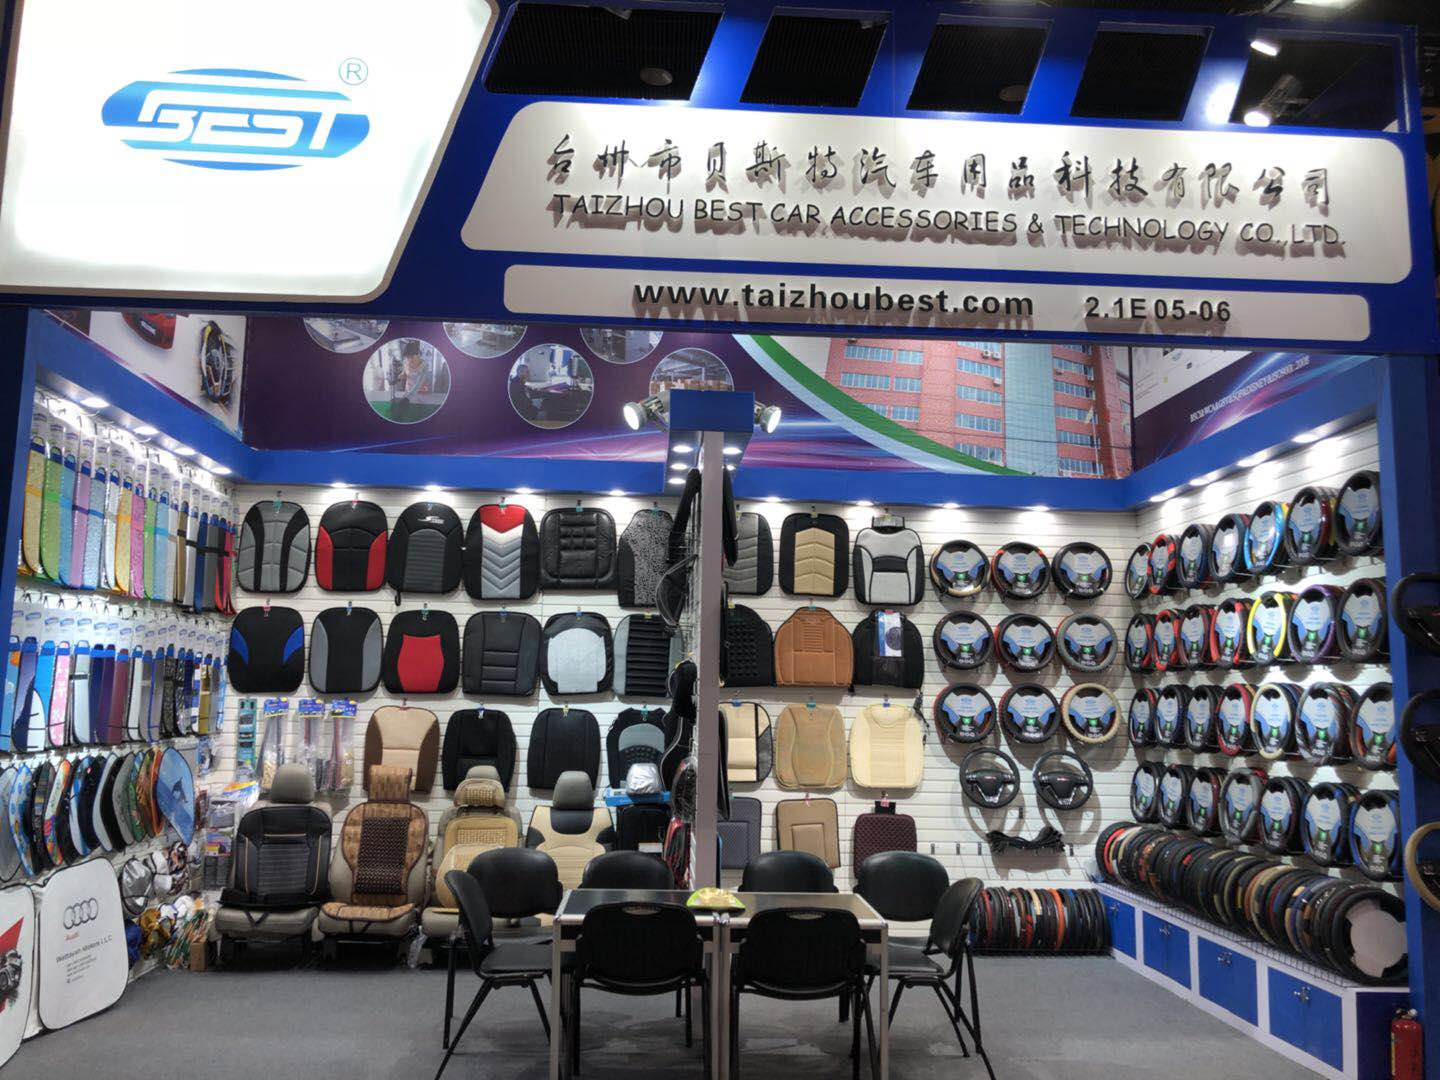 The 123rd Canton Fair booth No.:2.1E03-04